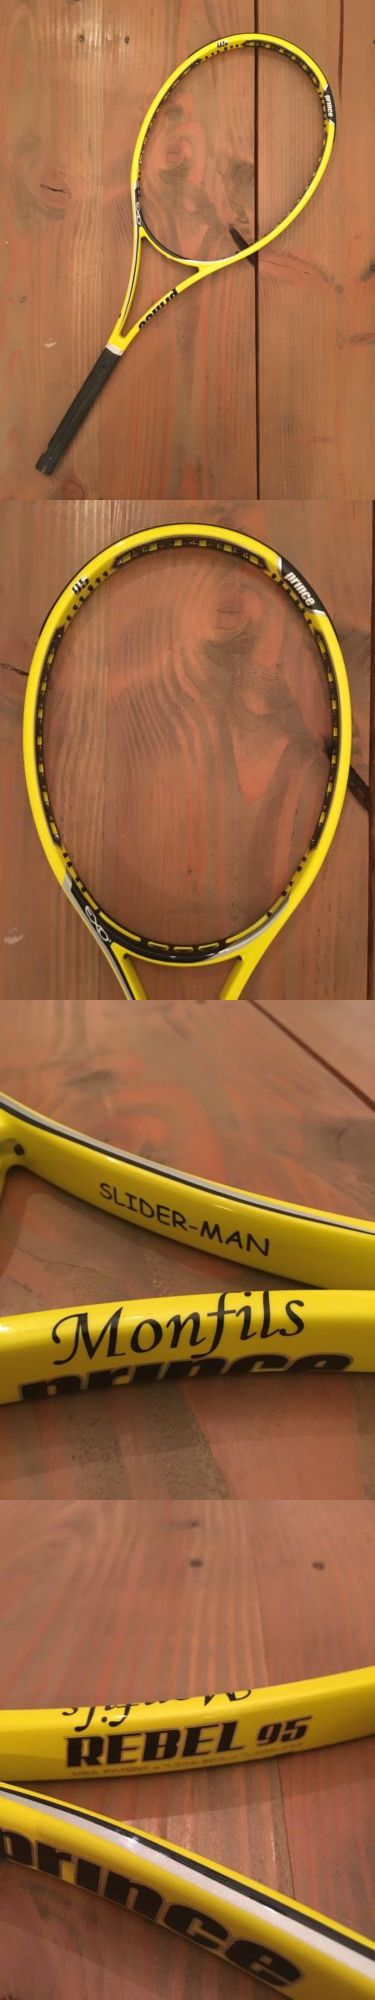 Racquets 20871: Prince Pro Stock Gael Monfils Exo3 Rebel 95 - Hairpin - Tx235p -> BUY IT NOW ONLY: $180 on eBay!